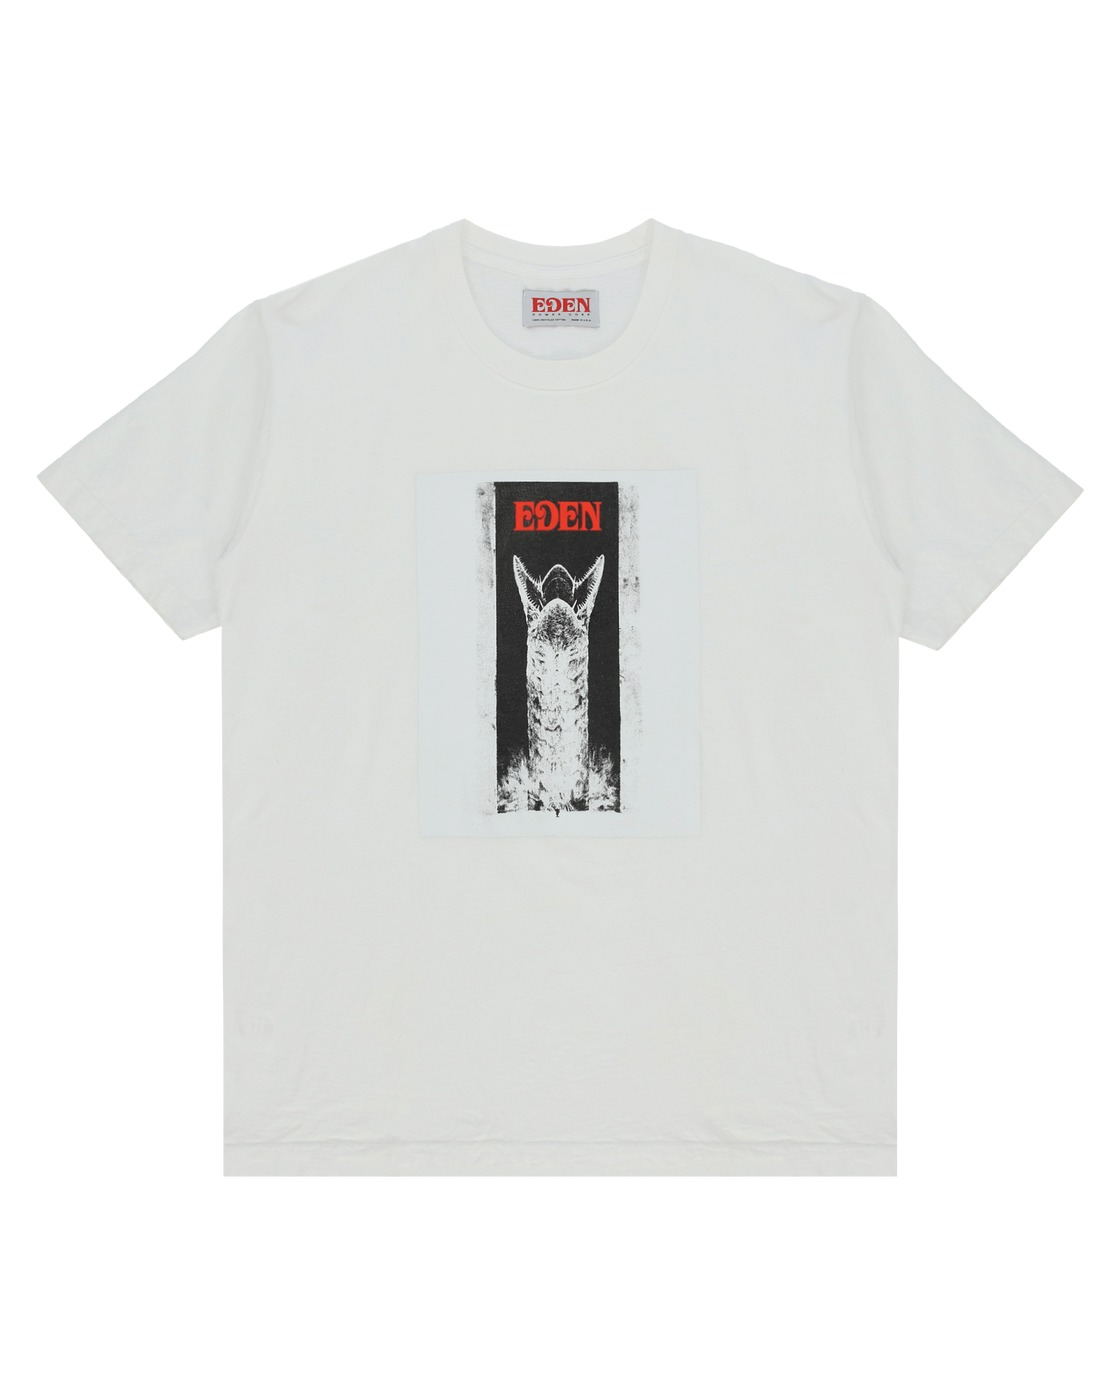 Eden Power Corp Shai Hulud Recycled T Shirt White